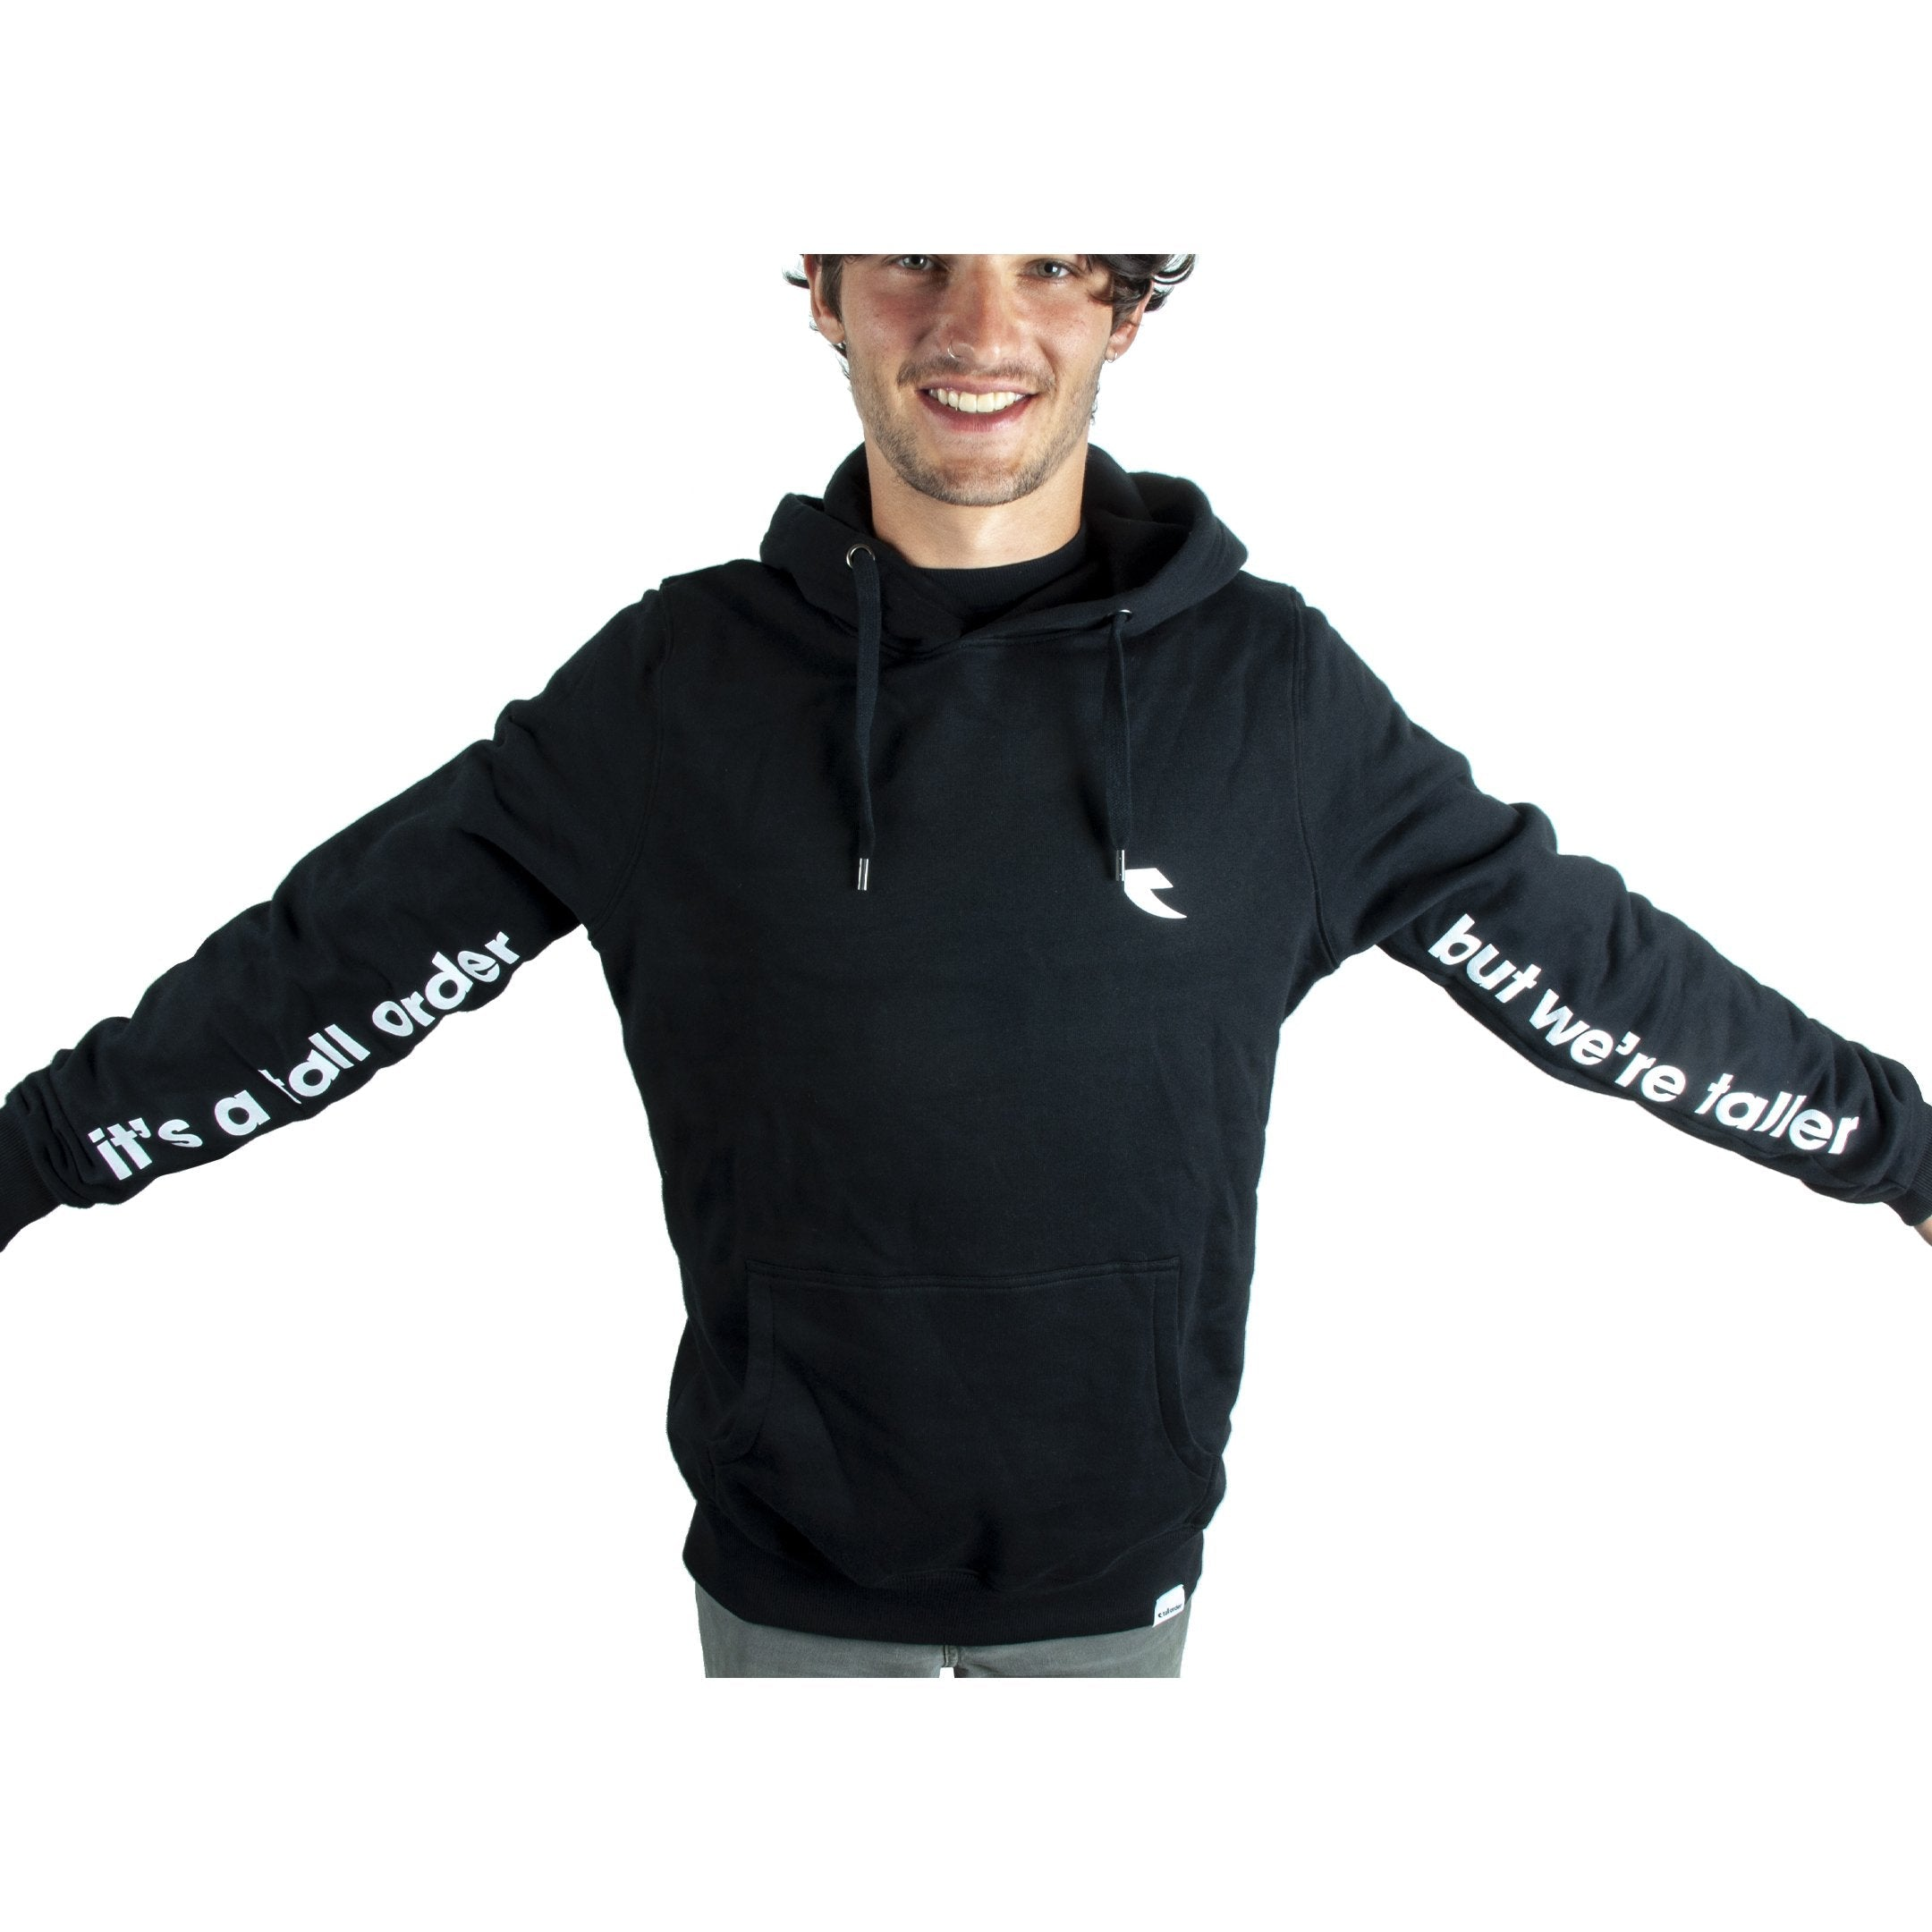 Tall Order Its a tall order but we're taller Sleeve Print Hoodie - Black | BMX